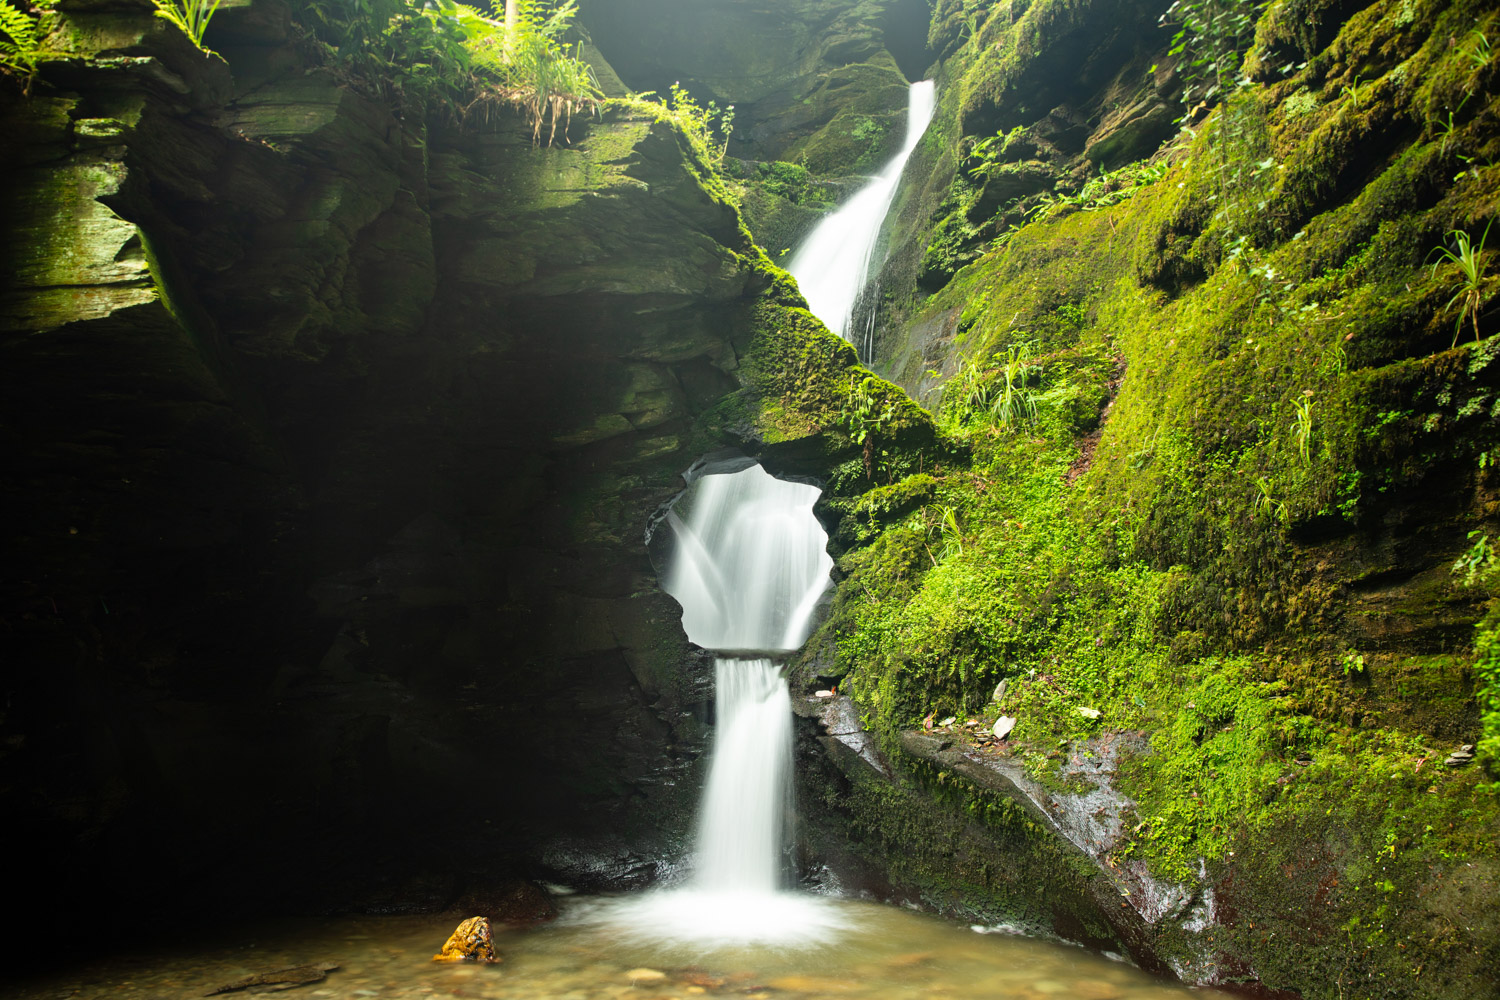 waterfall with green moss and foliage